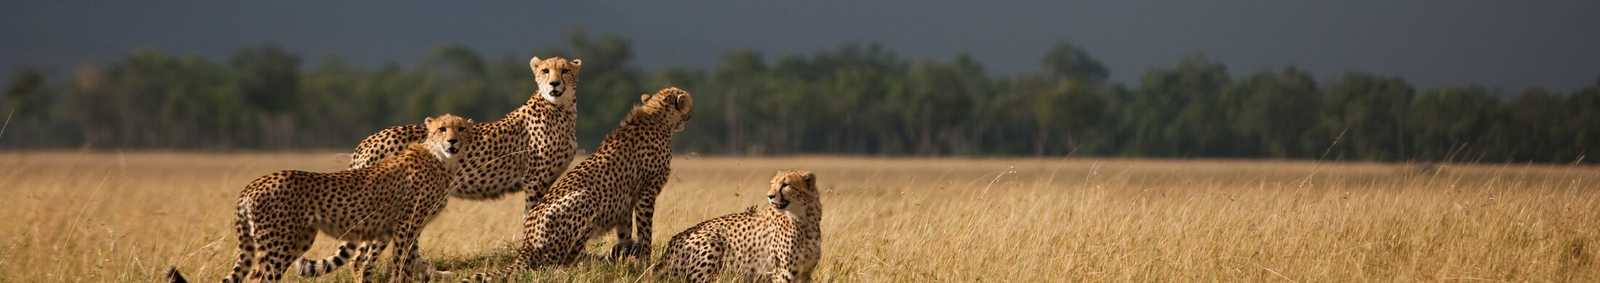 Cheetah's with storm on the horizon